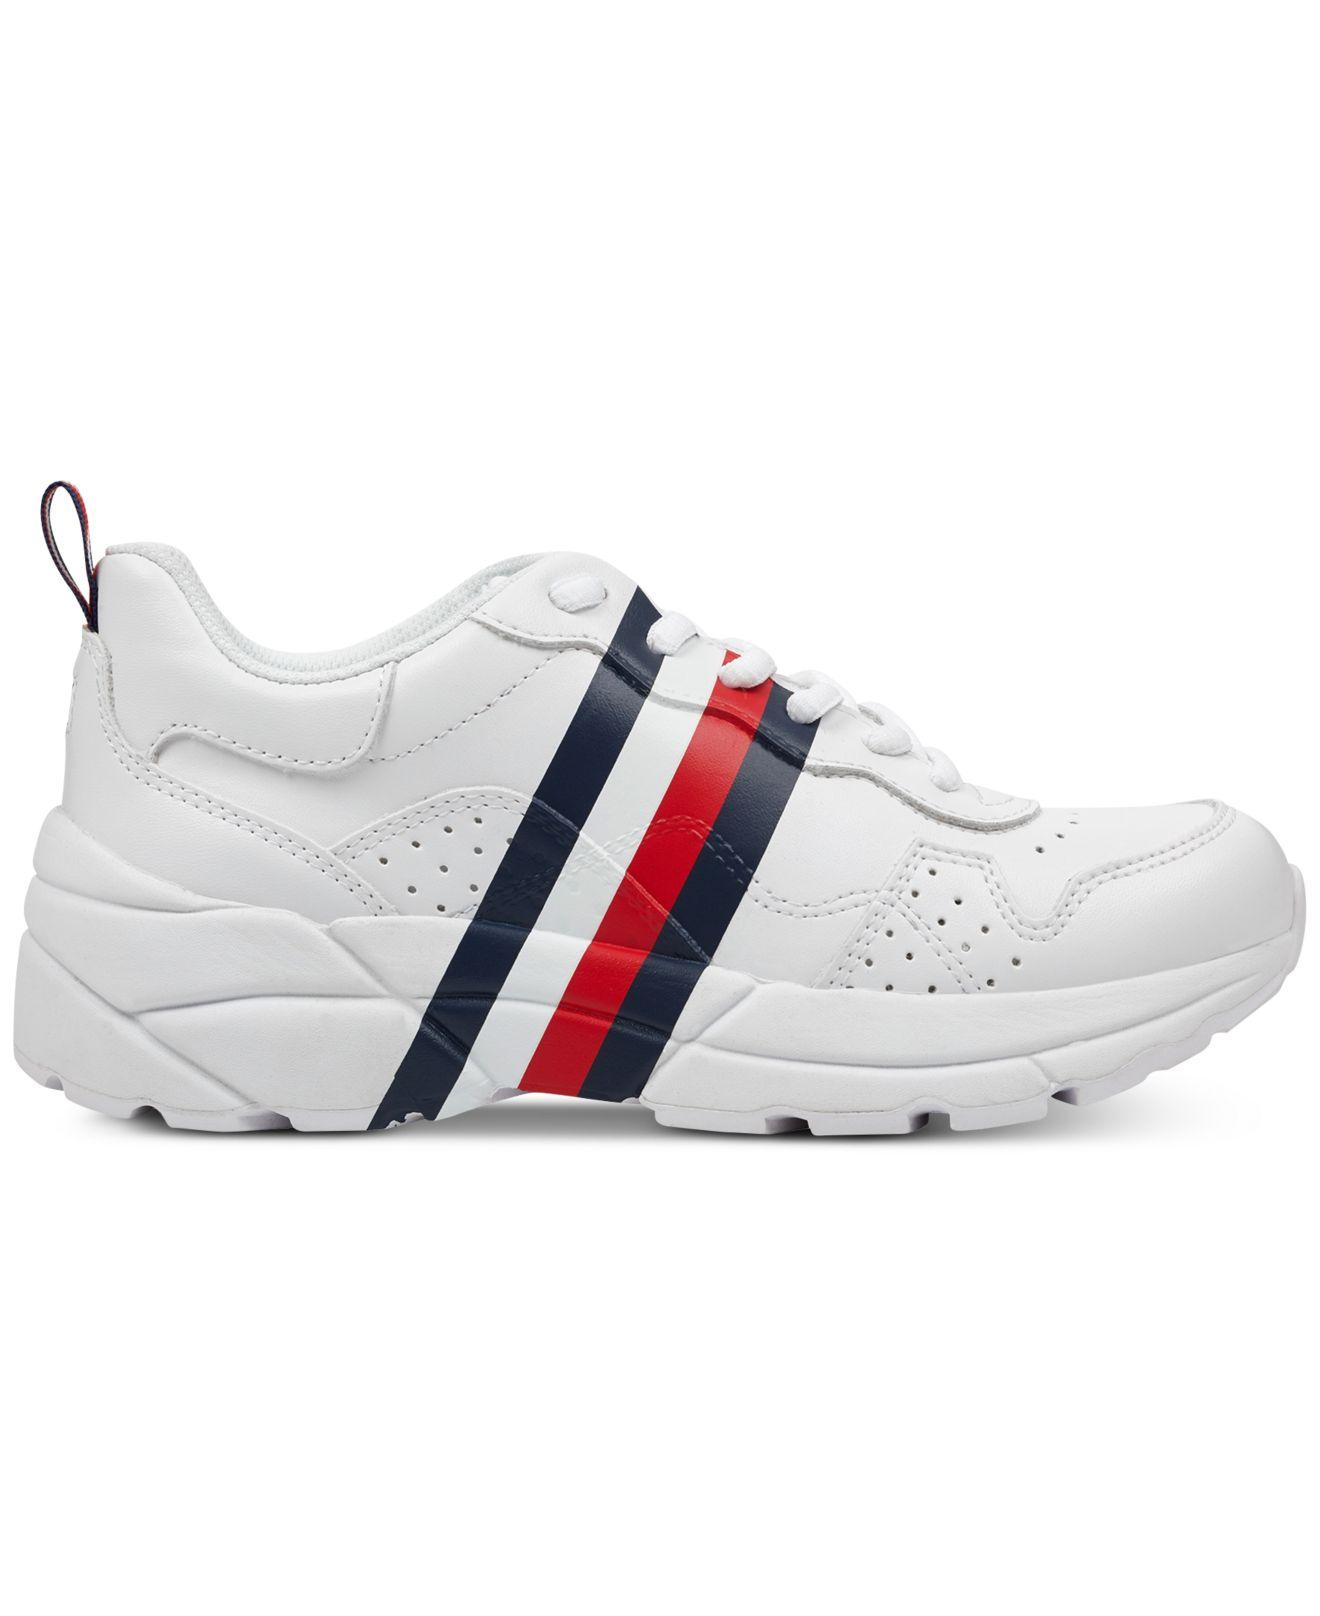 b8448c6063e081 Lyst - Tommy Hilfiger Envoy Sneakers in White